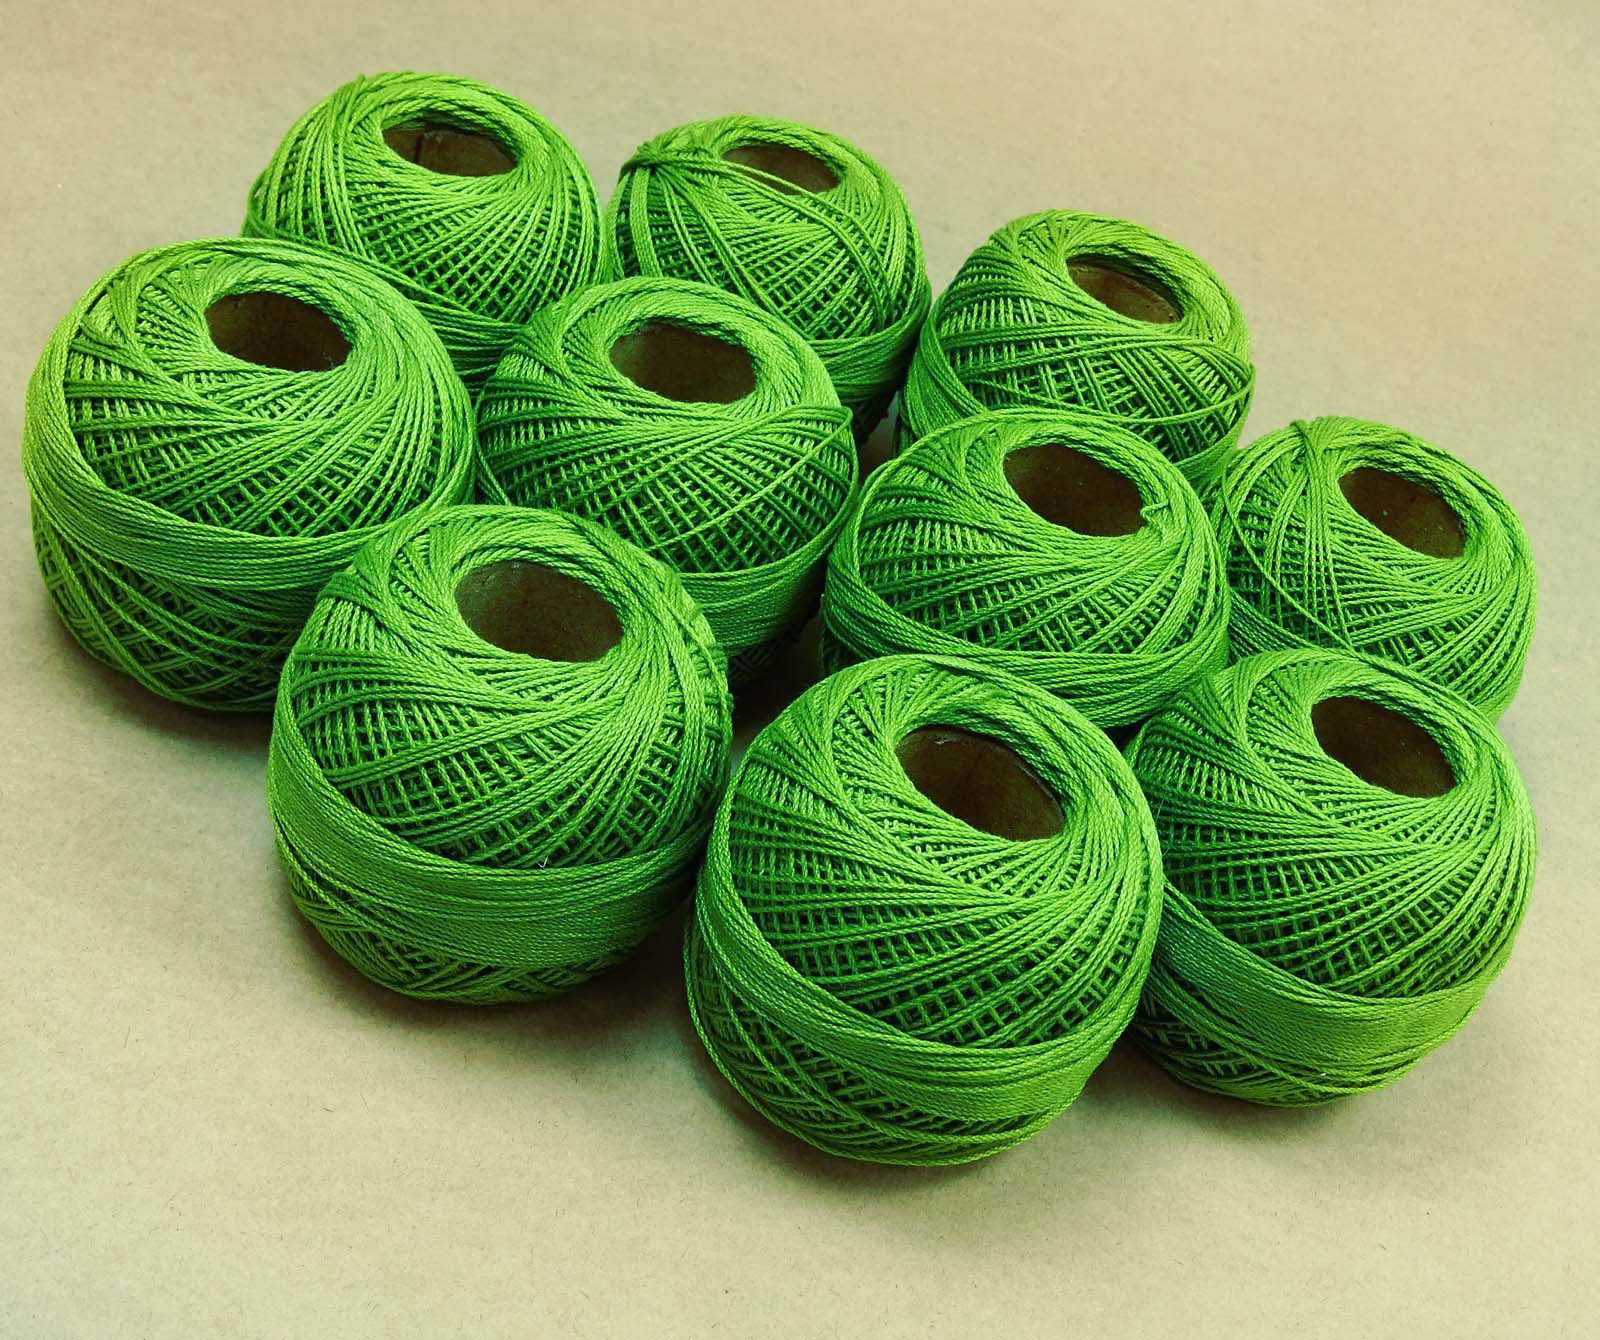 Crochet Cotton Yarn Awesome Anchor Crochet Polyester Knitting Tatting Ball Embroidery Of Delightful 44 Ideas Crochet Cotton Yarn